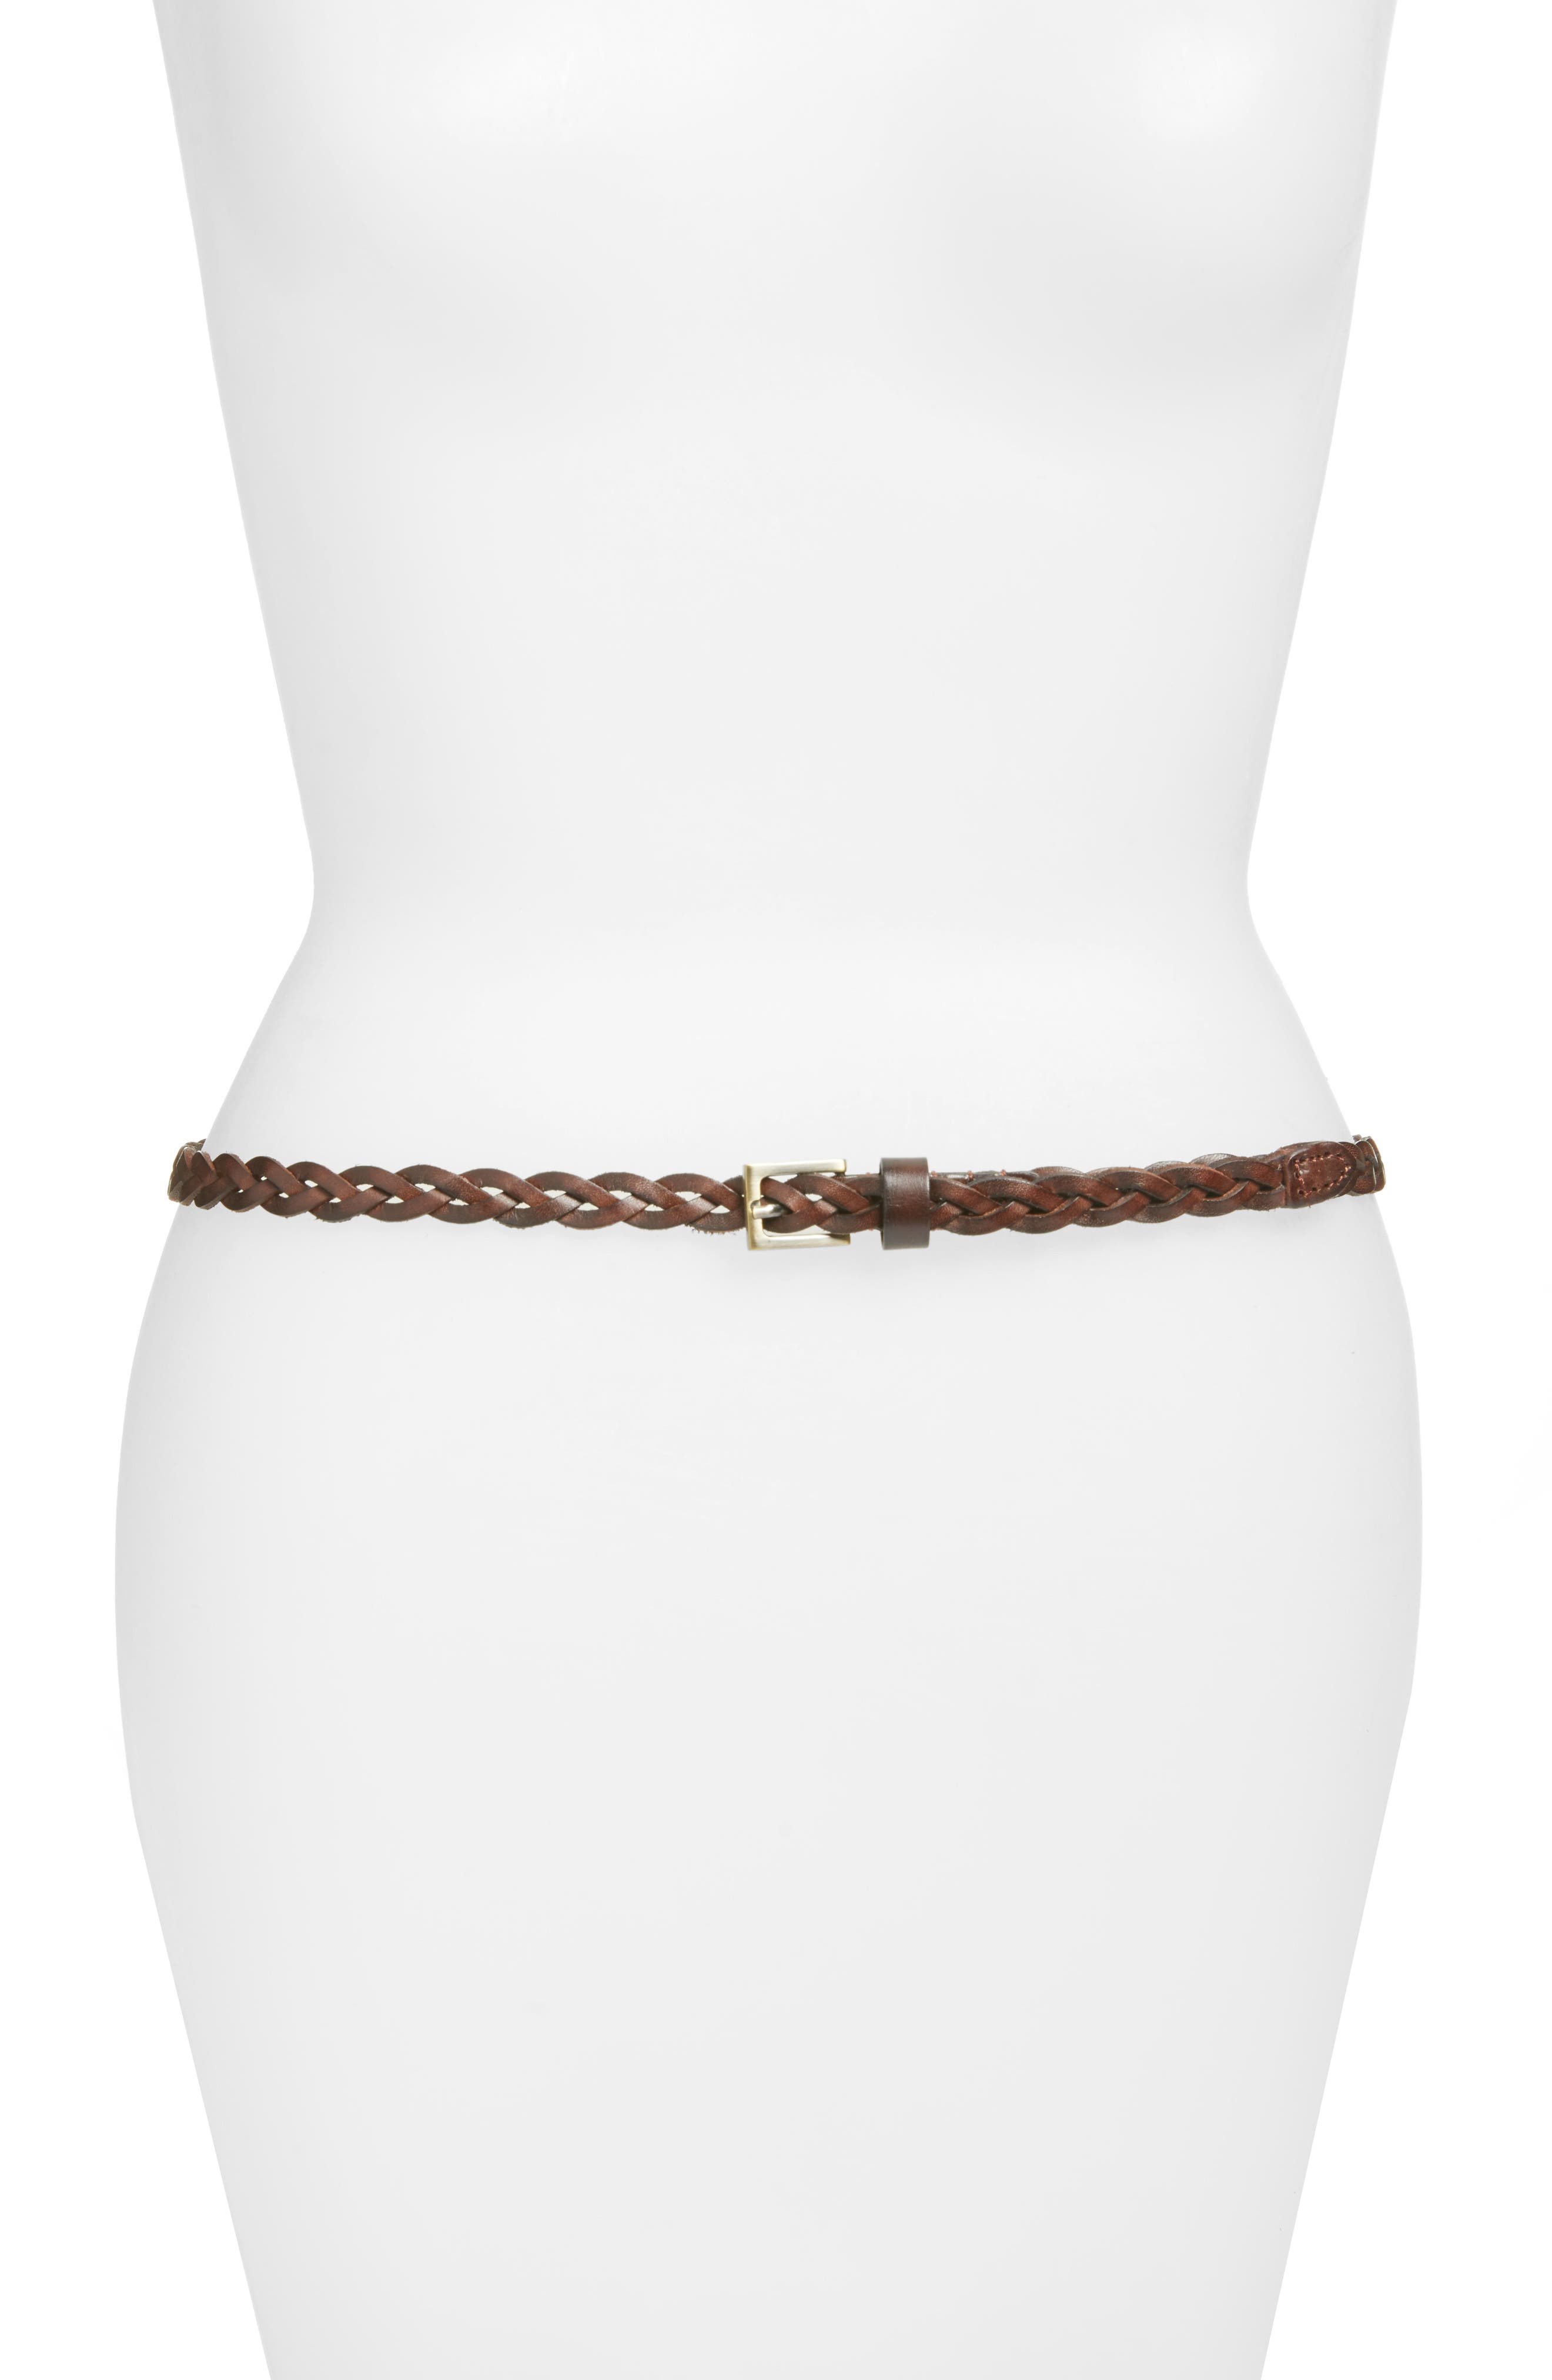 LAWRENCE BRAIDED LEATHER BELT